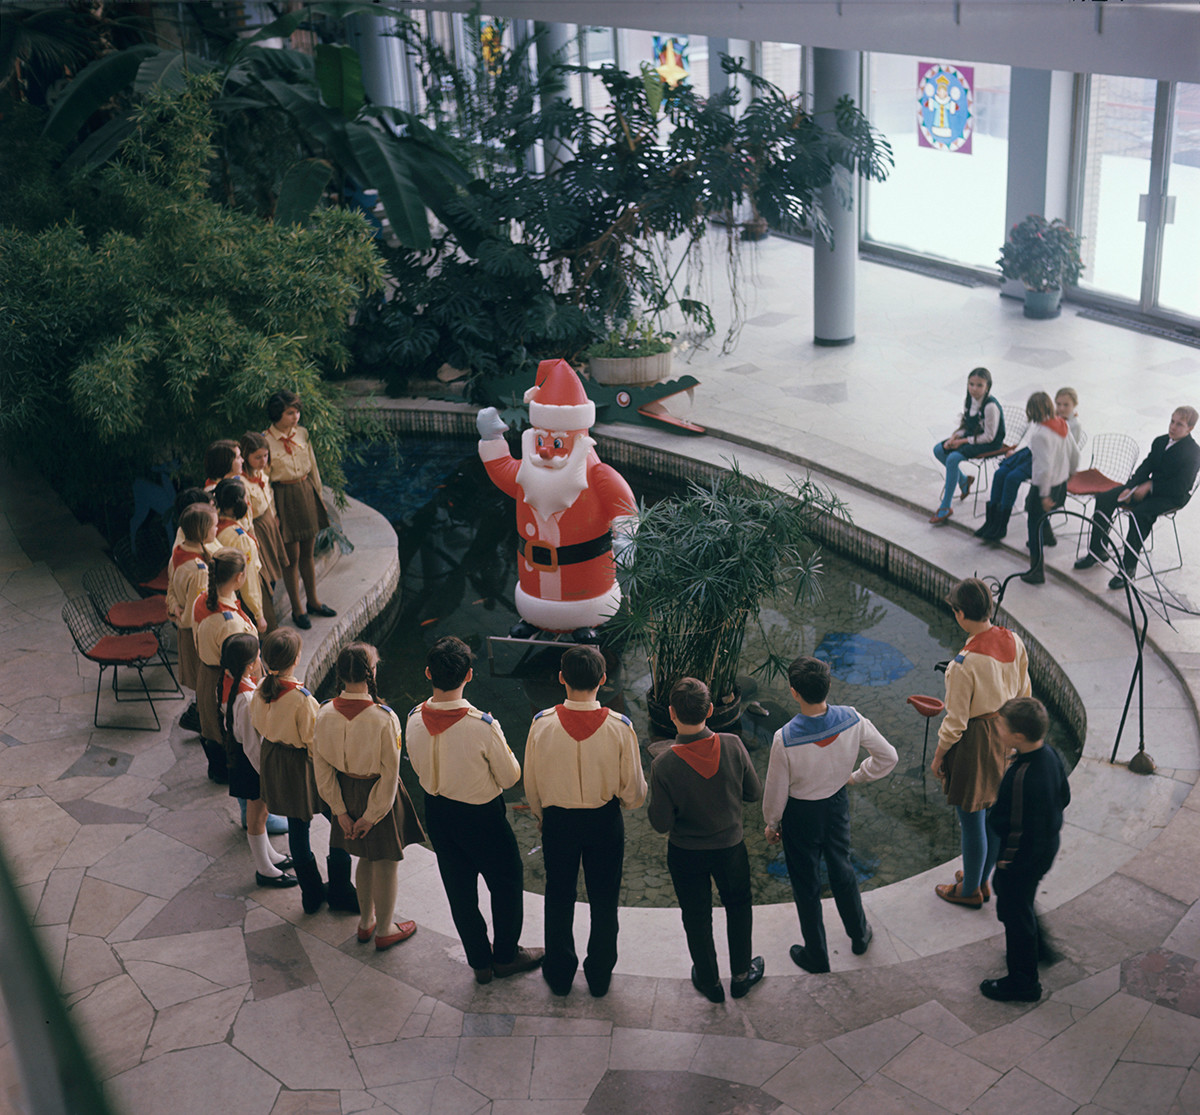 Many kids relied on Soviet Santa to fulfill their wishes.